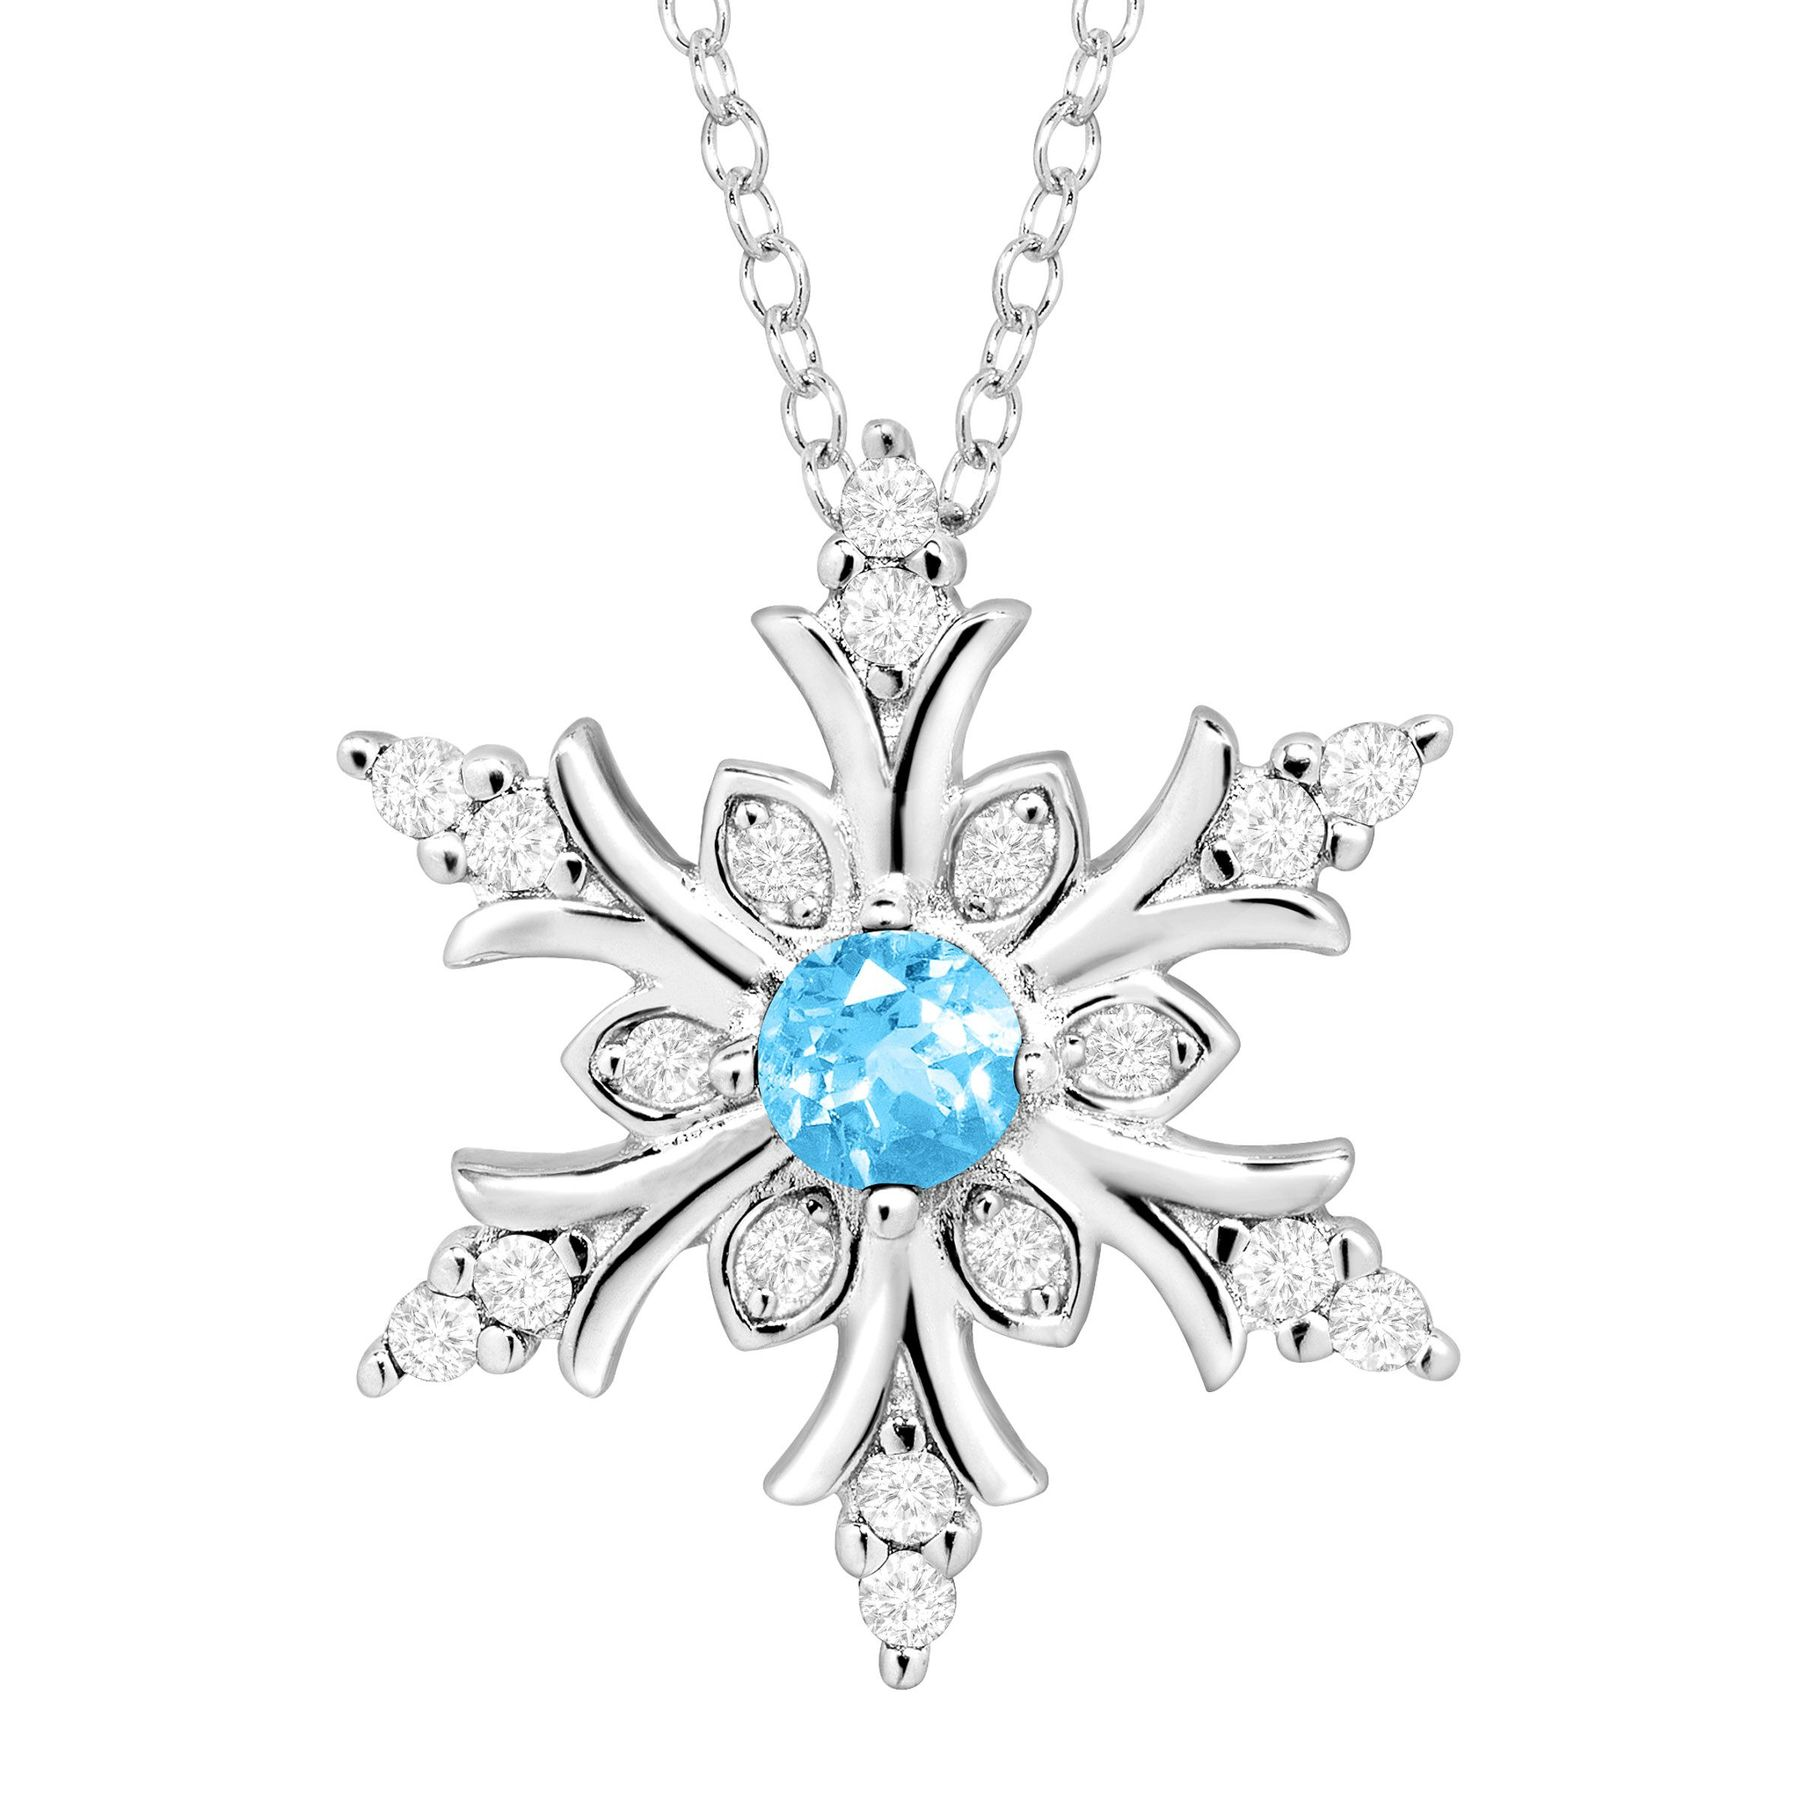 ca jewelry silver sterling charm b catcher necklace pendant dp cubic amazon snowflake zirconia